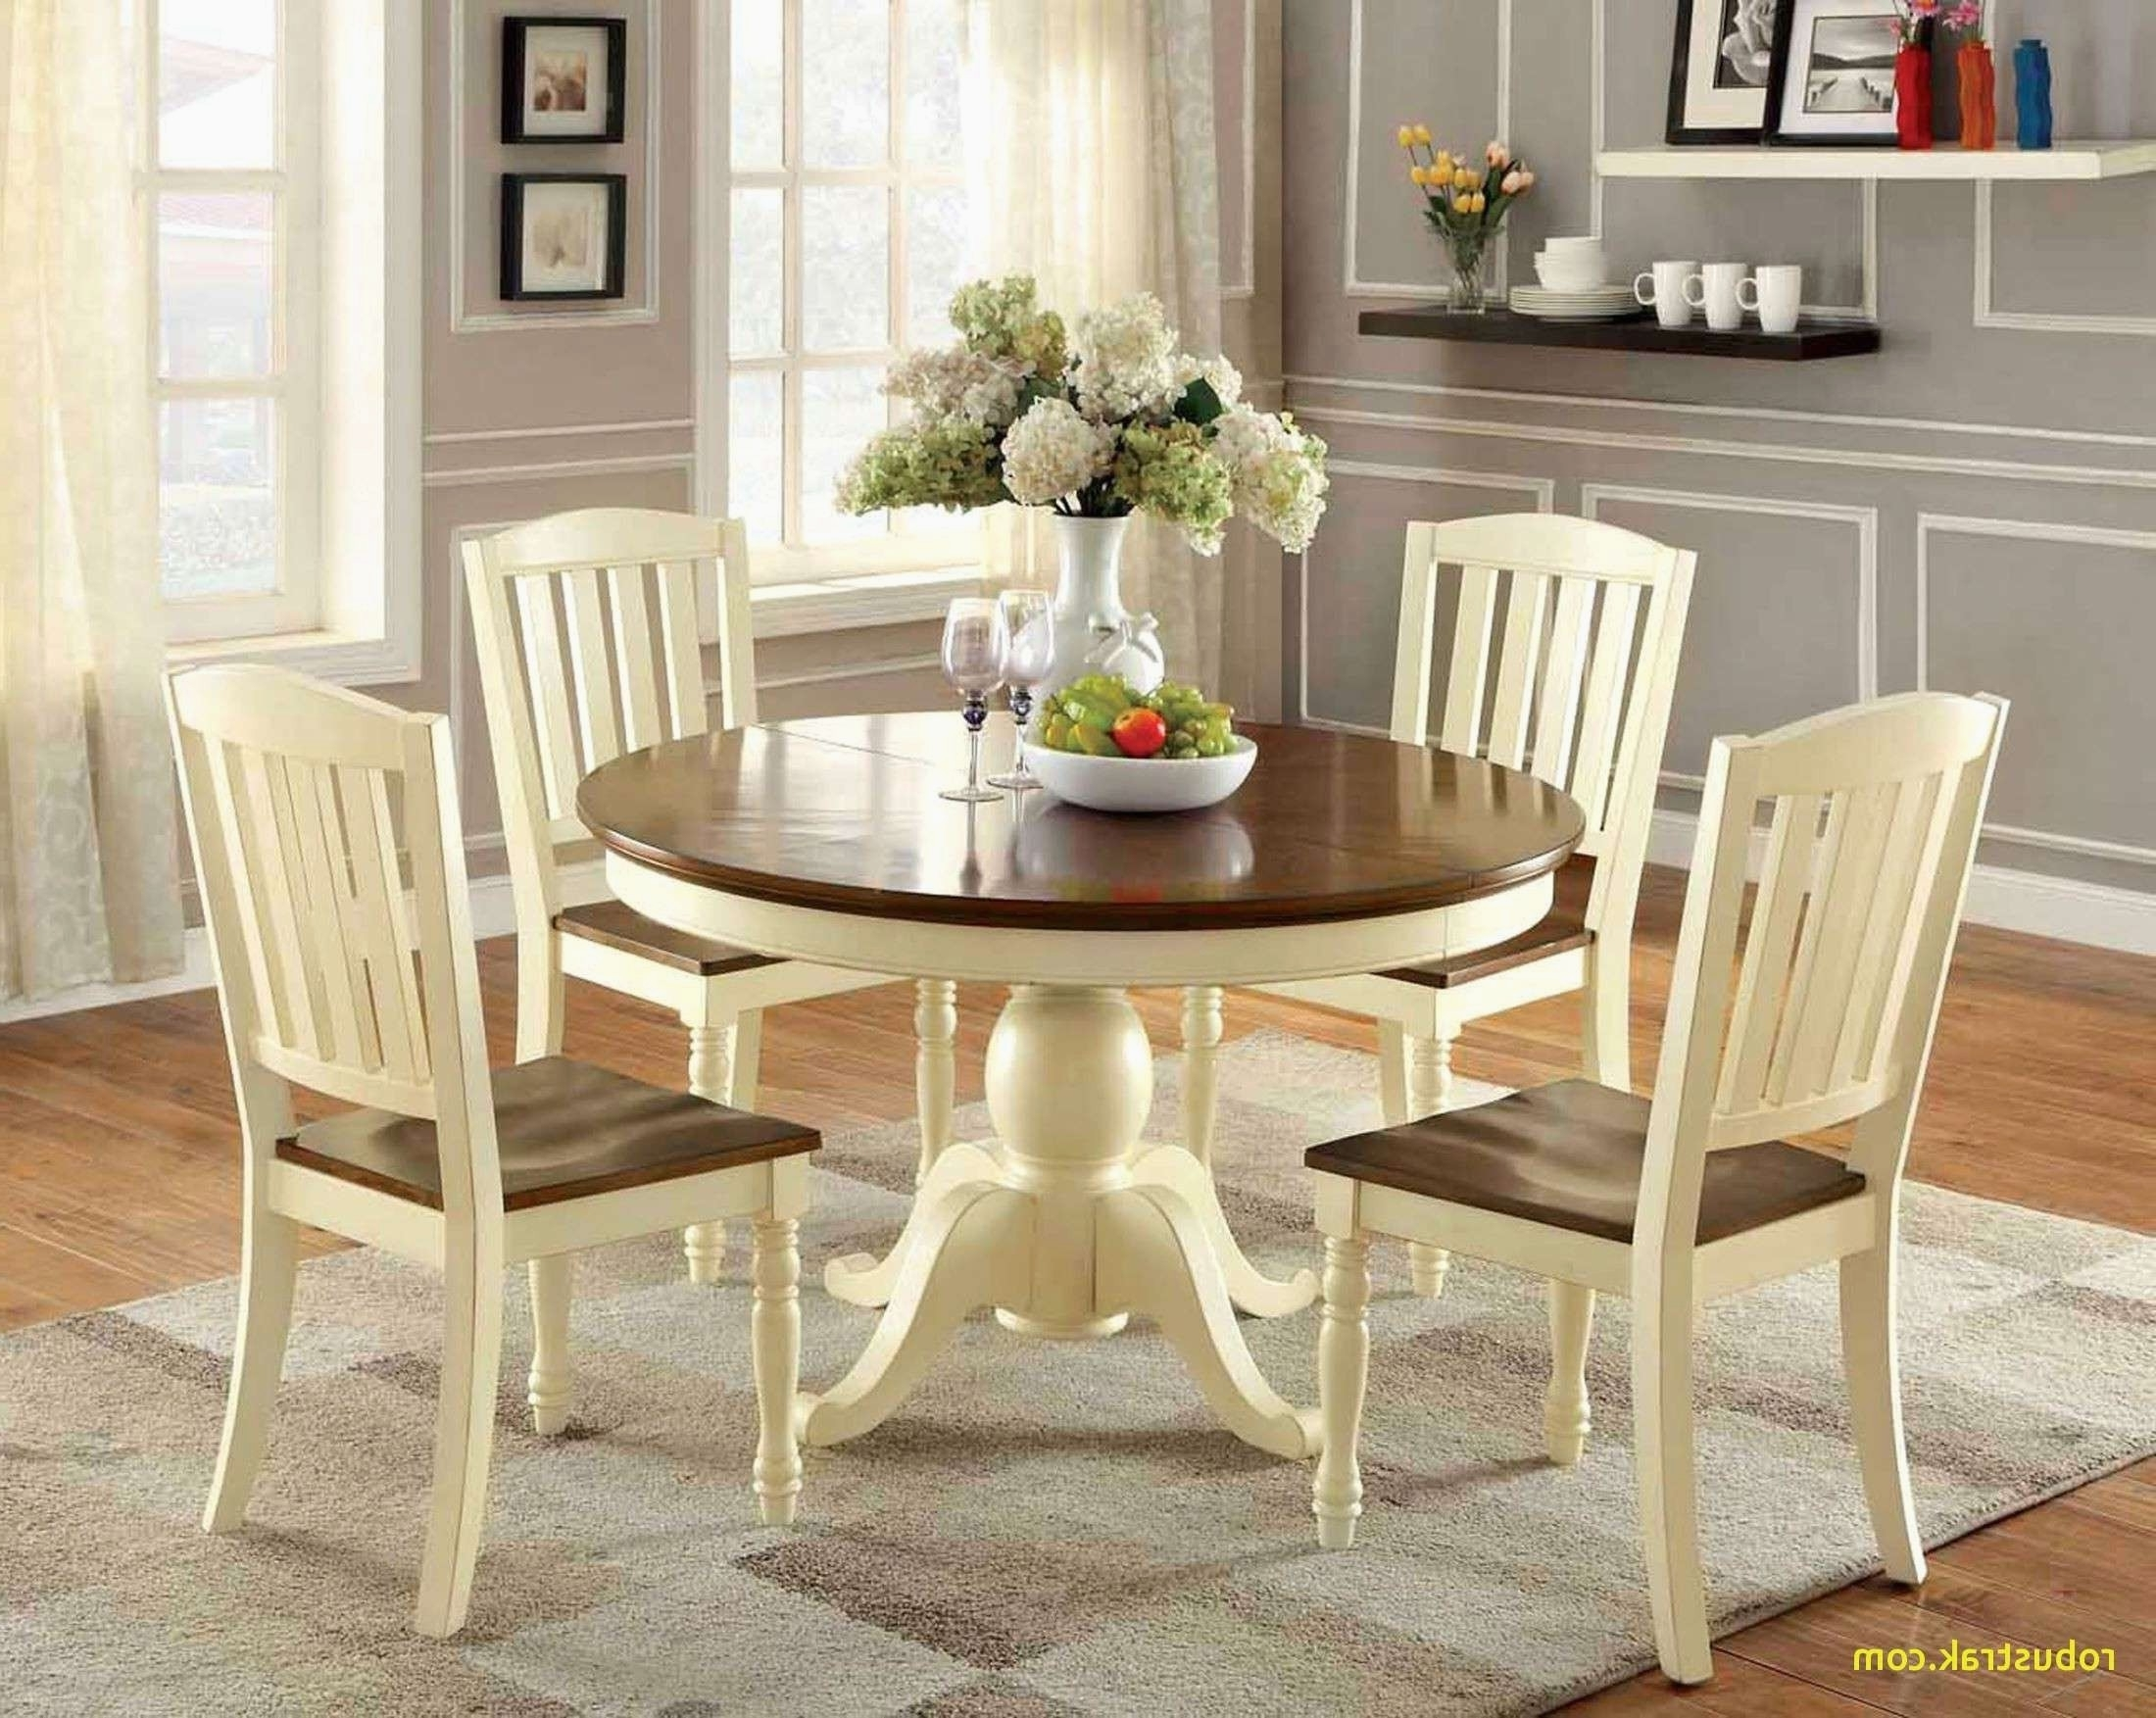 2017 Magnolia Home English Country Oval Dining Tables pertaining to White Oval Extending Dining Table Lovely English Country Oval Dining